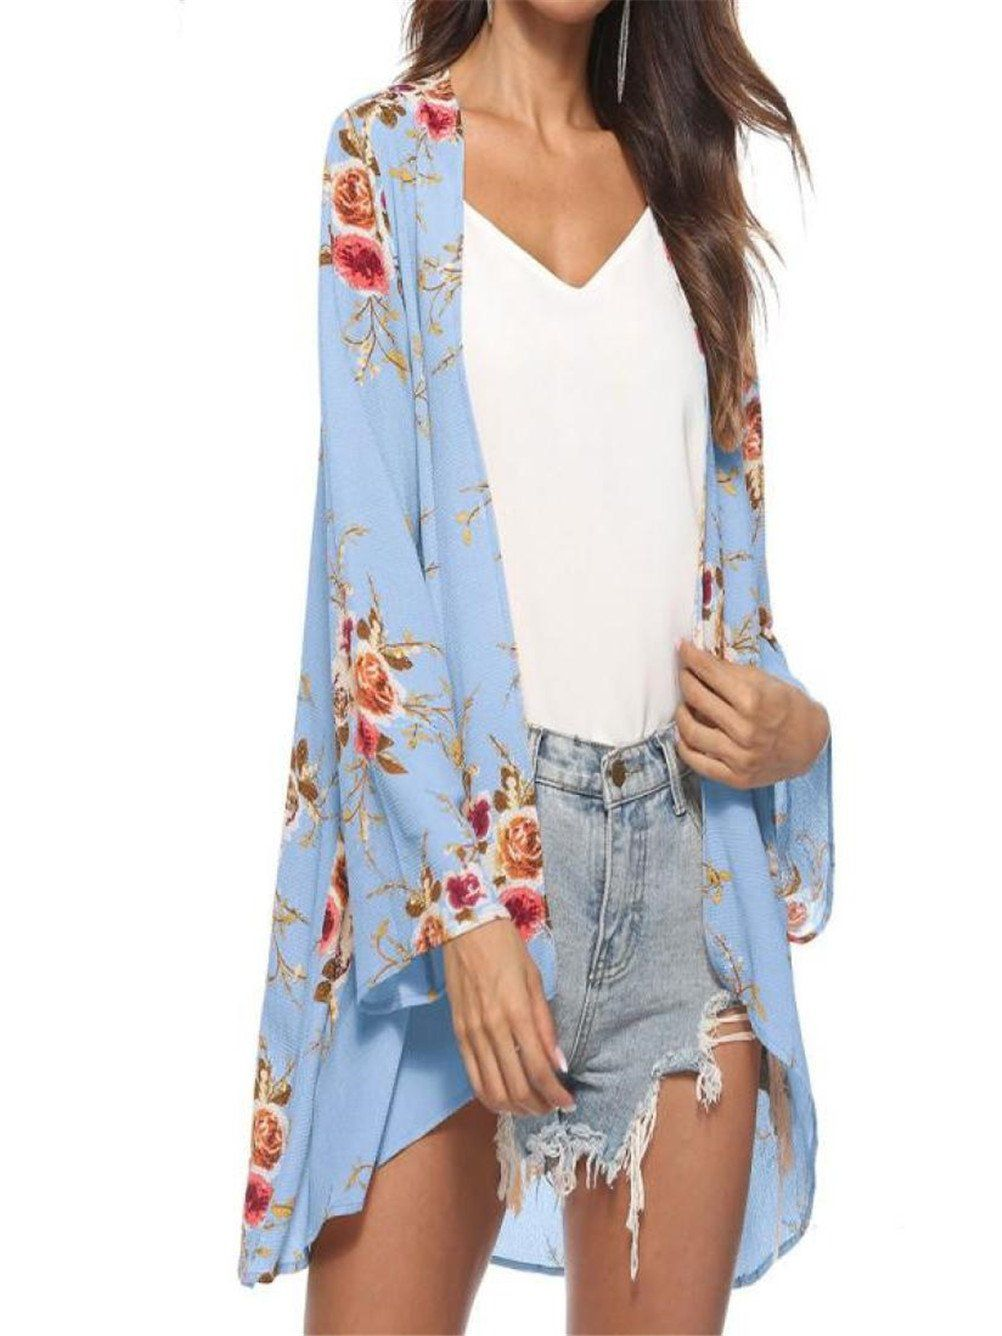 Anjunie tops women blouse floral cover casual tops loose kimono